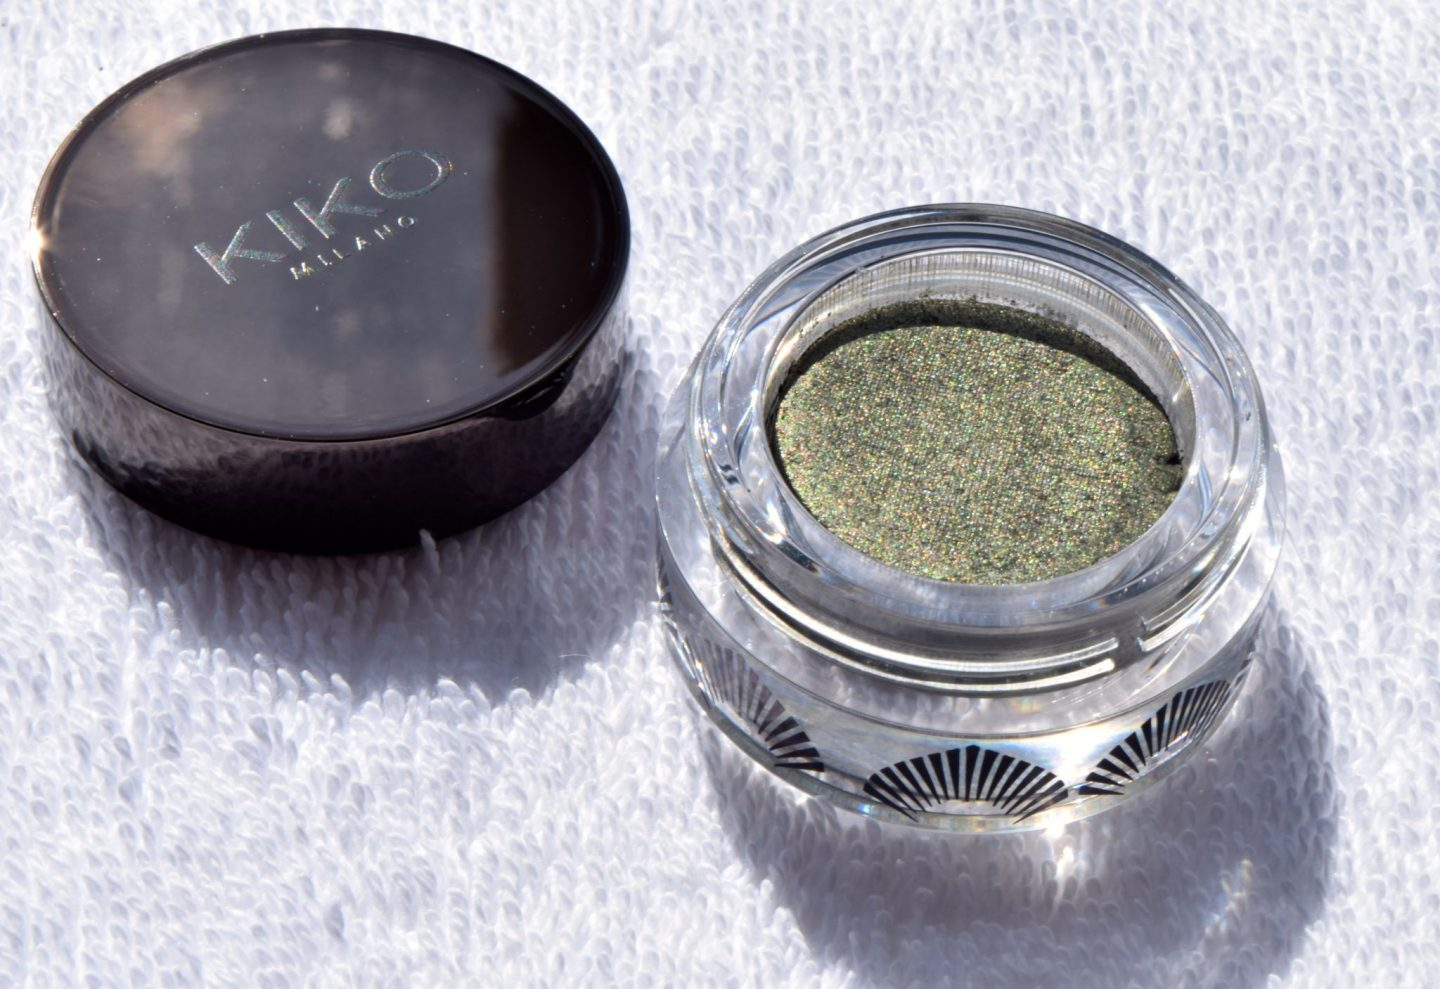 Kiko 05 Metallic Shine eyeshadow 2